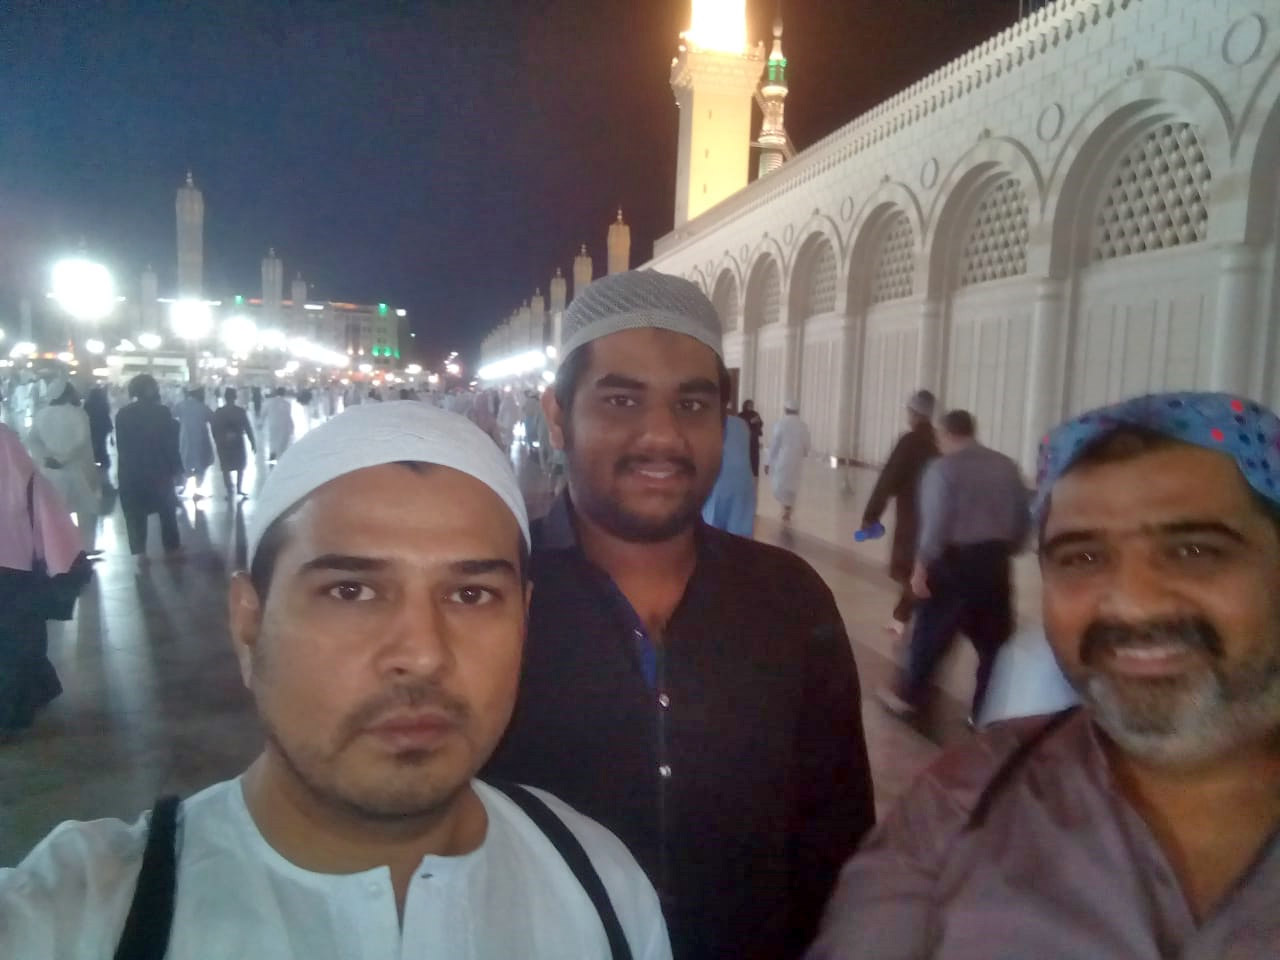 Kamran A. Khan, Engr. Taha A. Khan and Imran Ahmed Khan Ghouri outside the Masjid-e-Nabwi